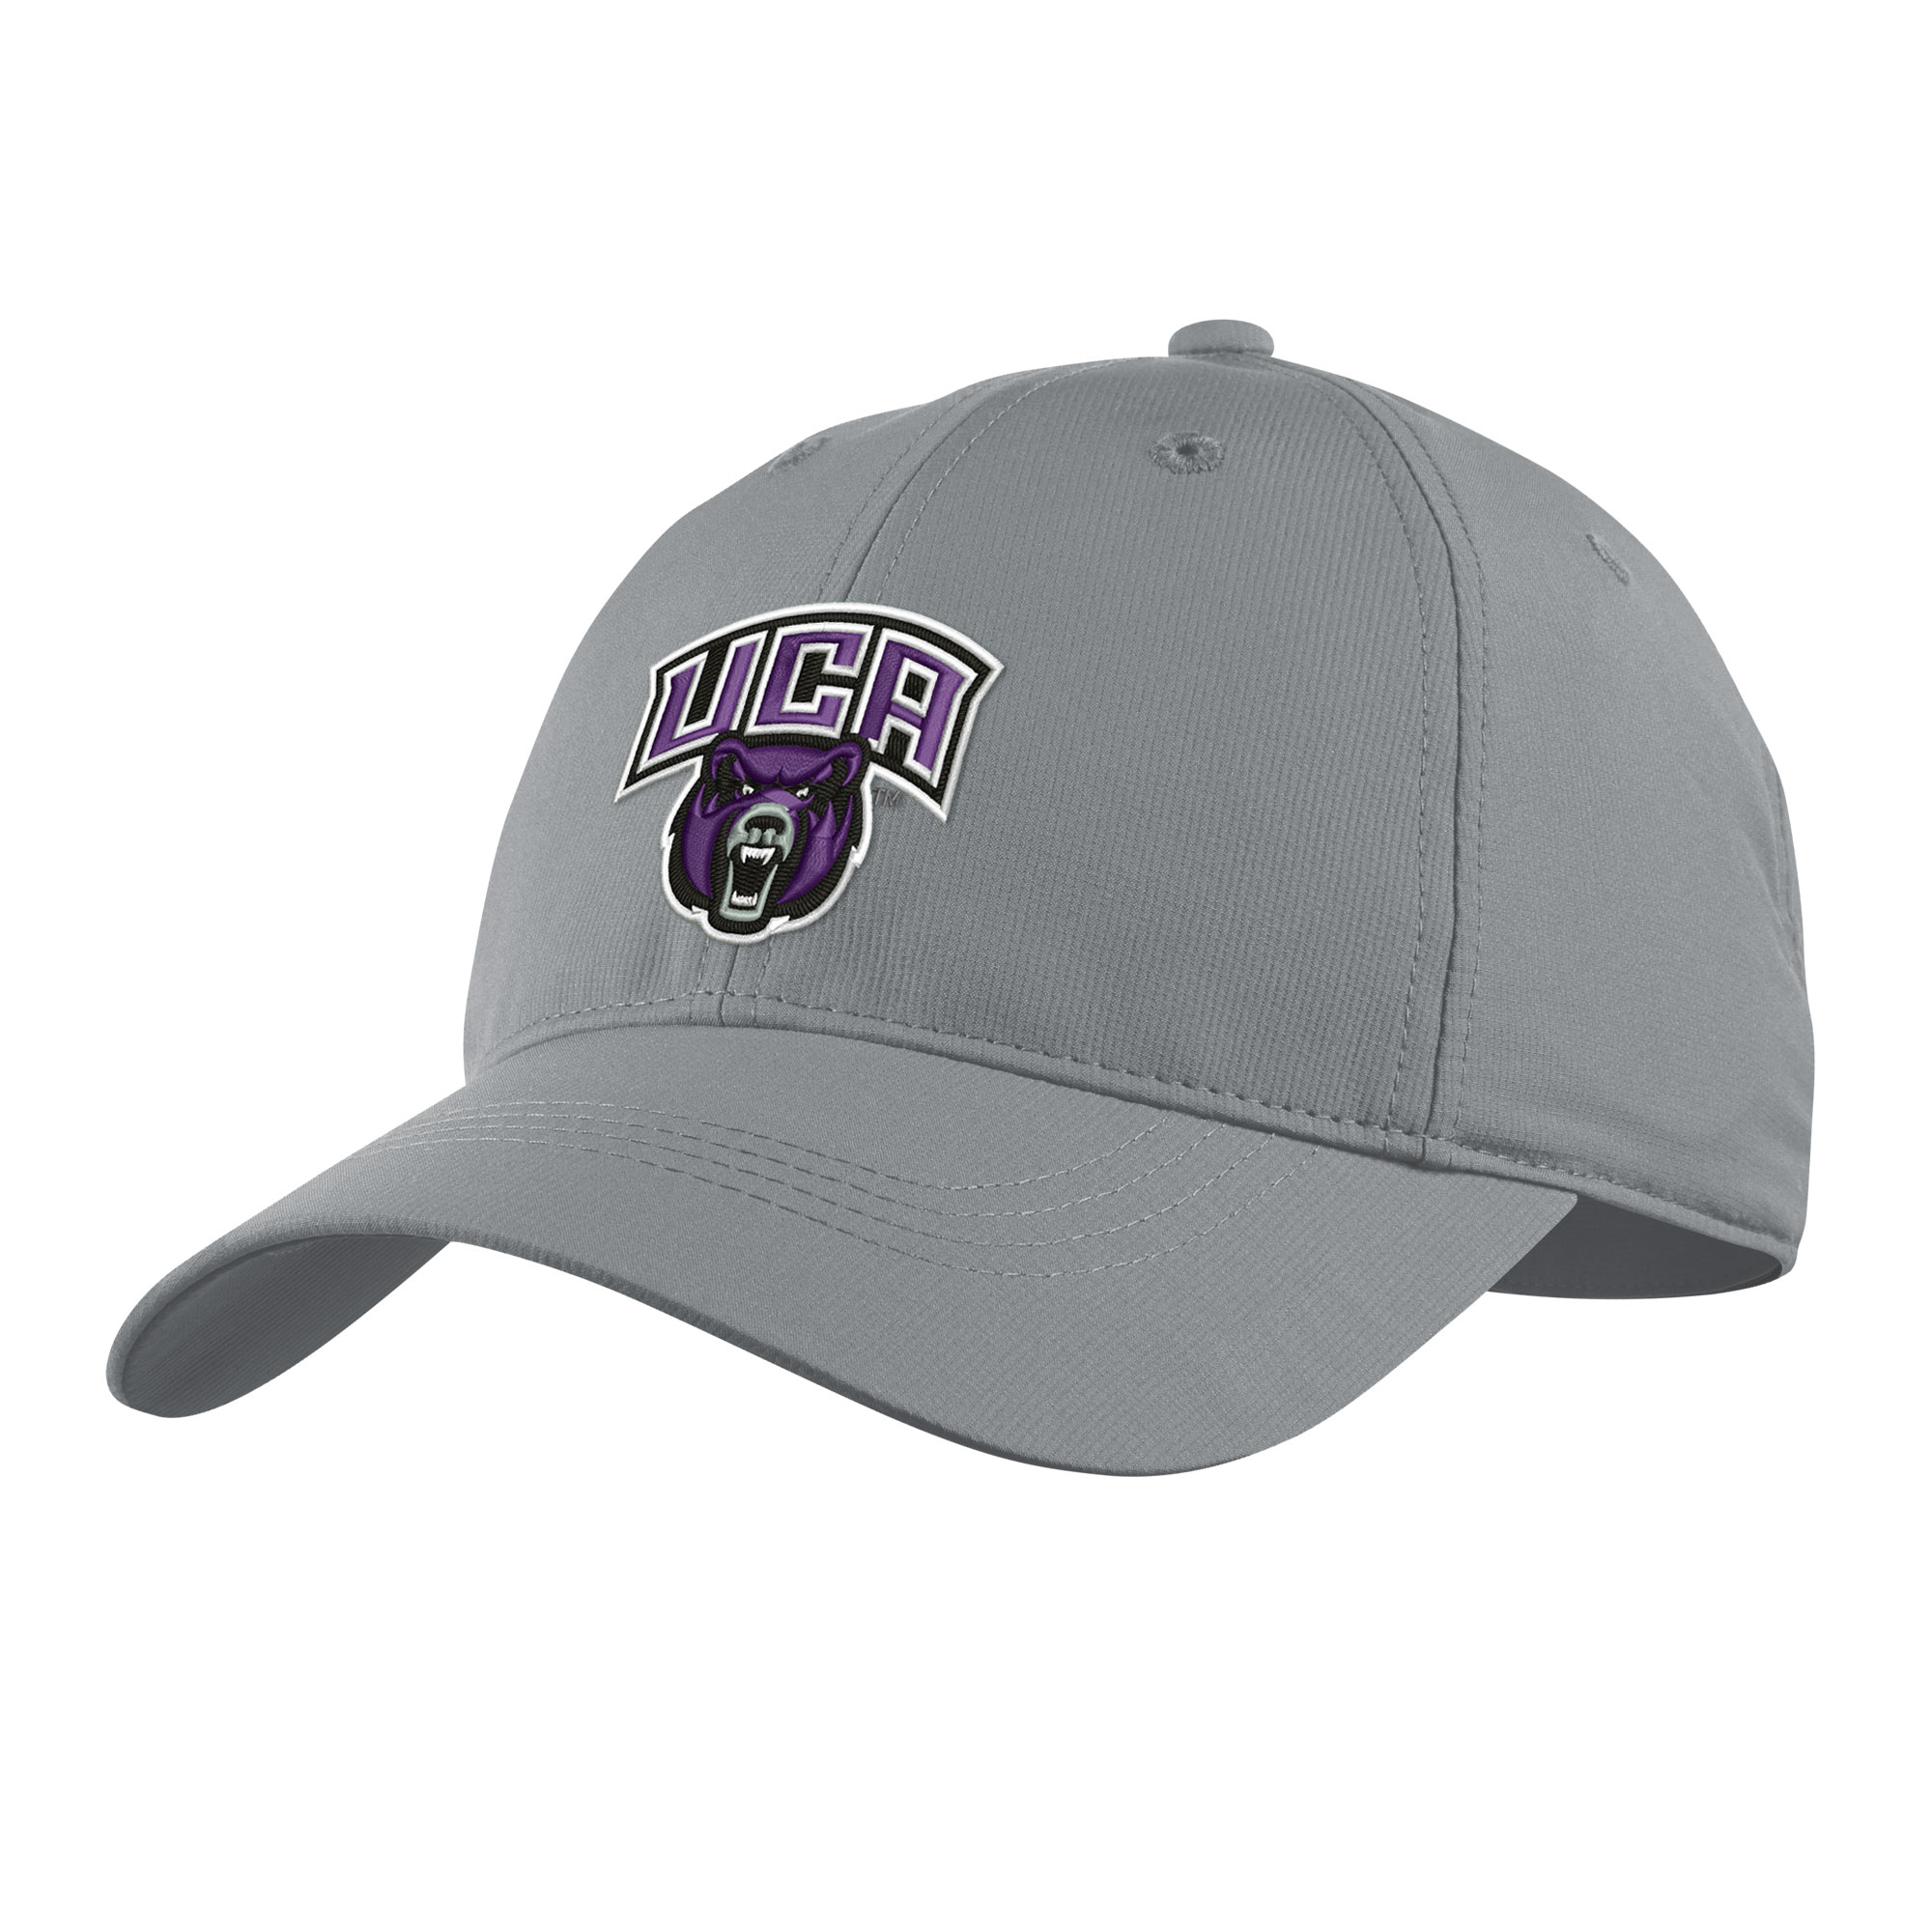 Golf L91 Tech Cap